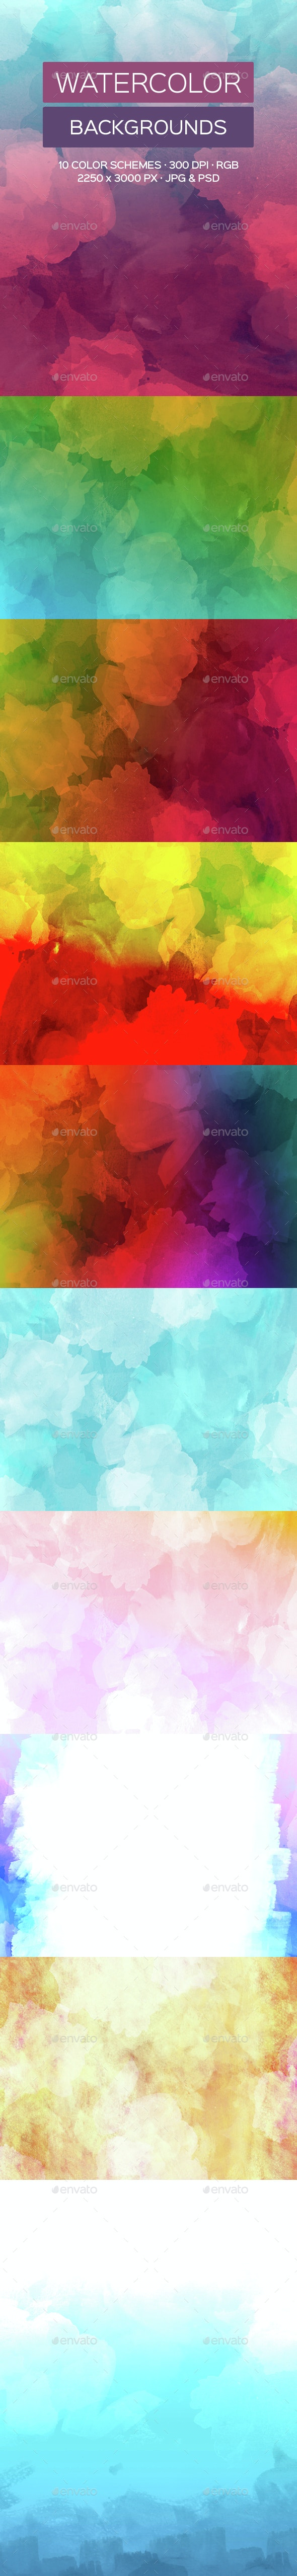 Water Color Backgrounds - Abstract Backgrounds